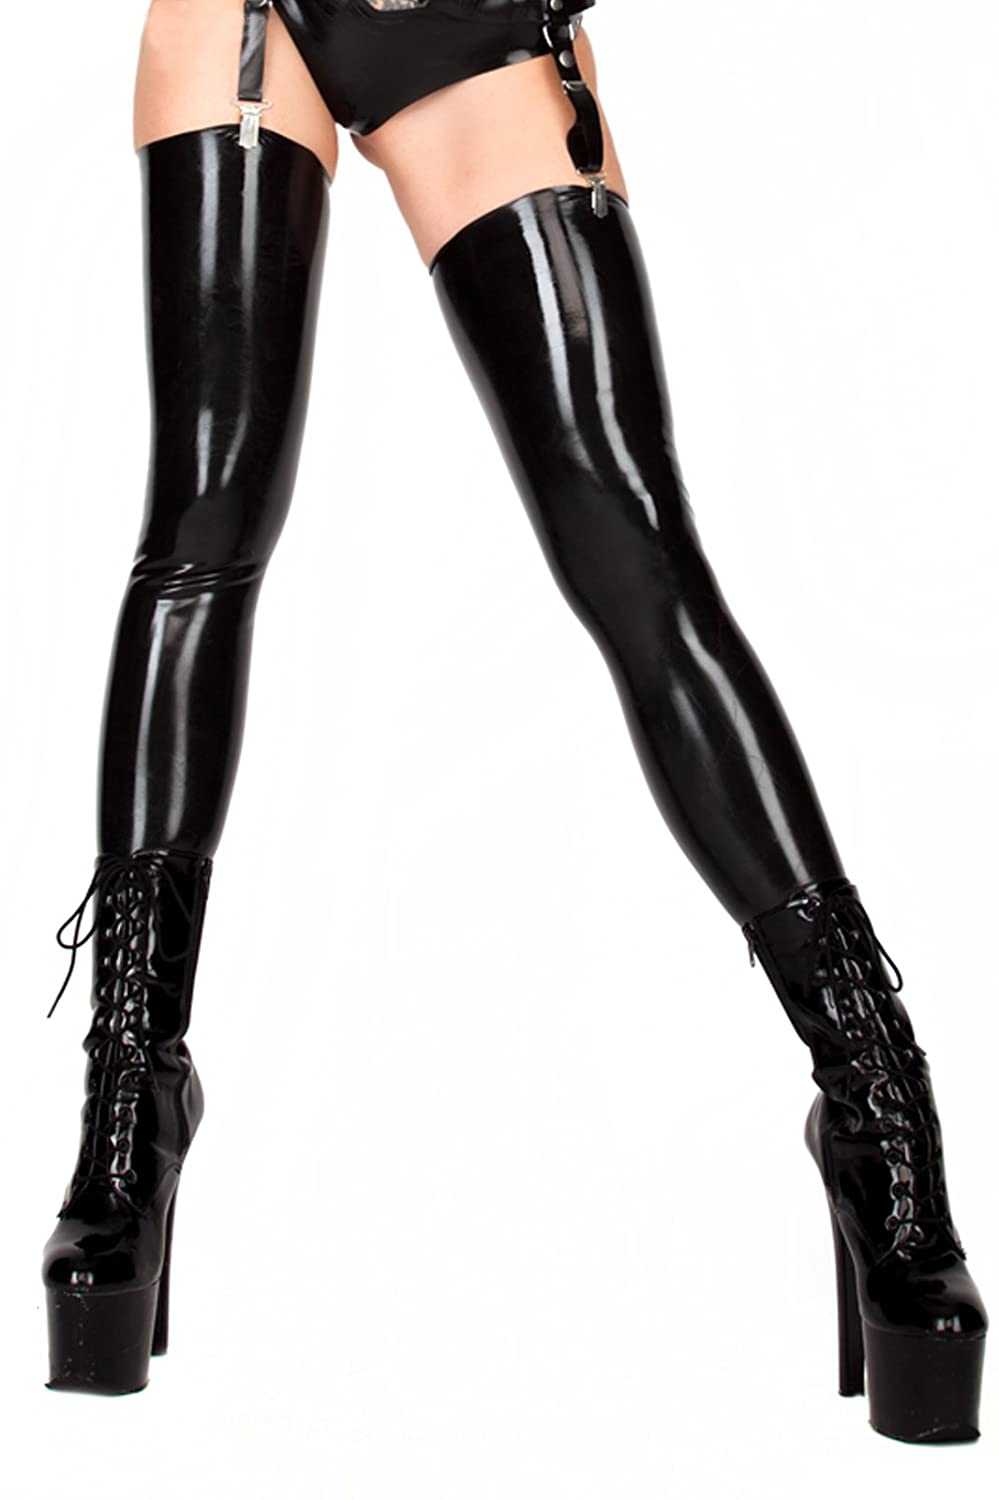 ce98bf41fa2 Amazon.com  ECOSPLAY Women s Fetish Range Latex Rubber Black Thigh-high  Stockings  Clothing